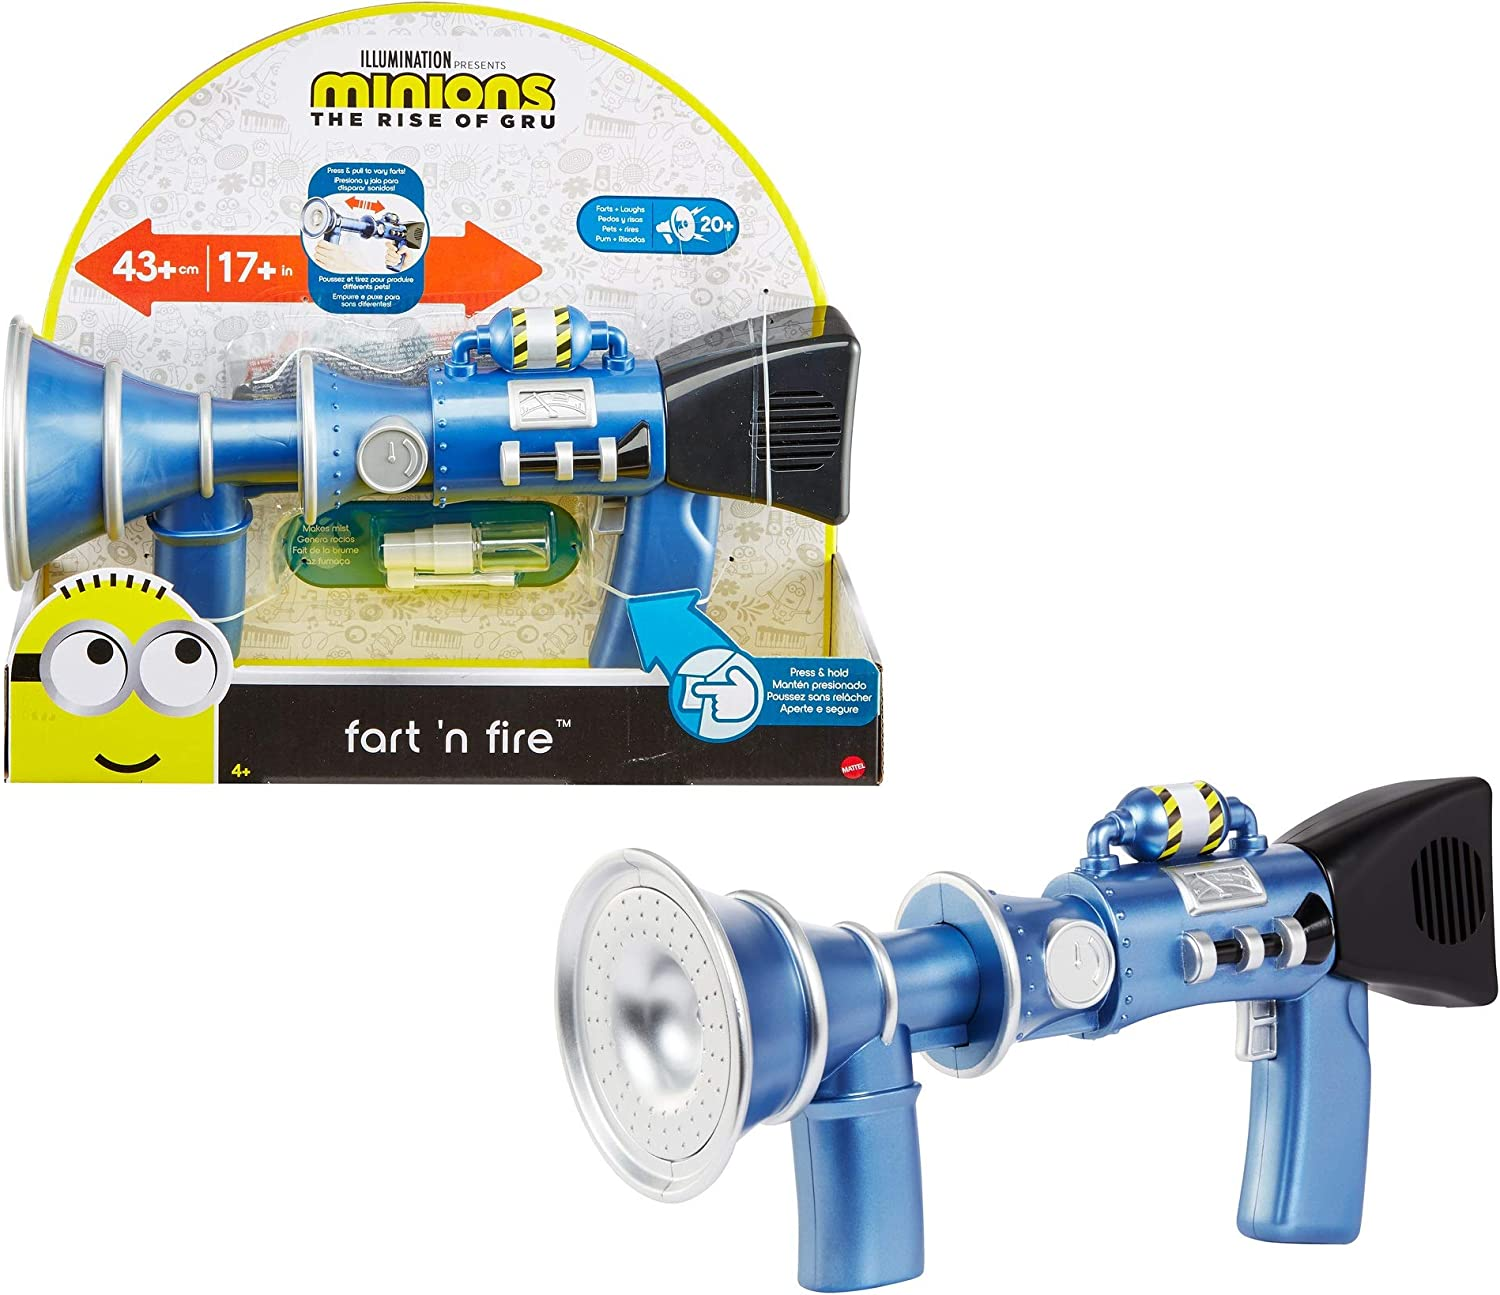 50+ Best Gift Ideas & Toys for 4 Year Old Boys (2020 Updated) 35